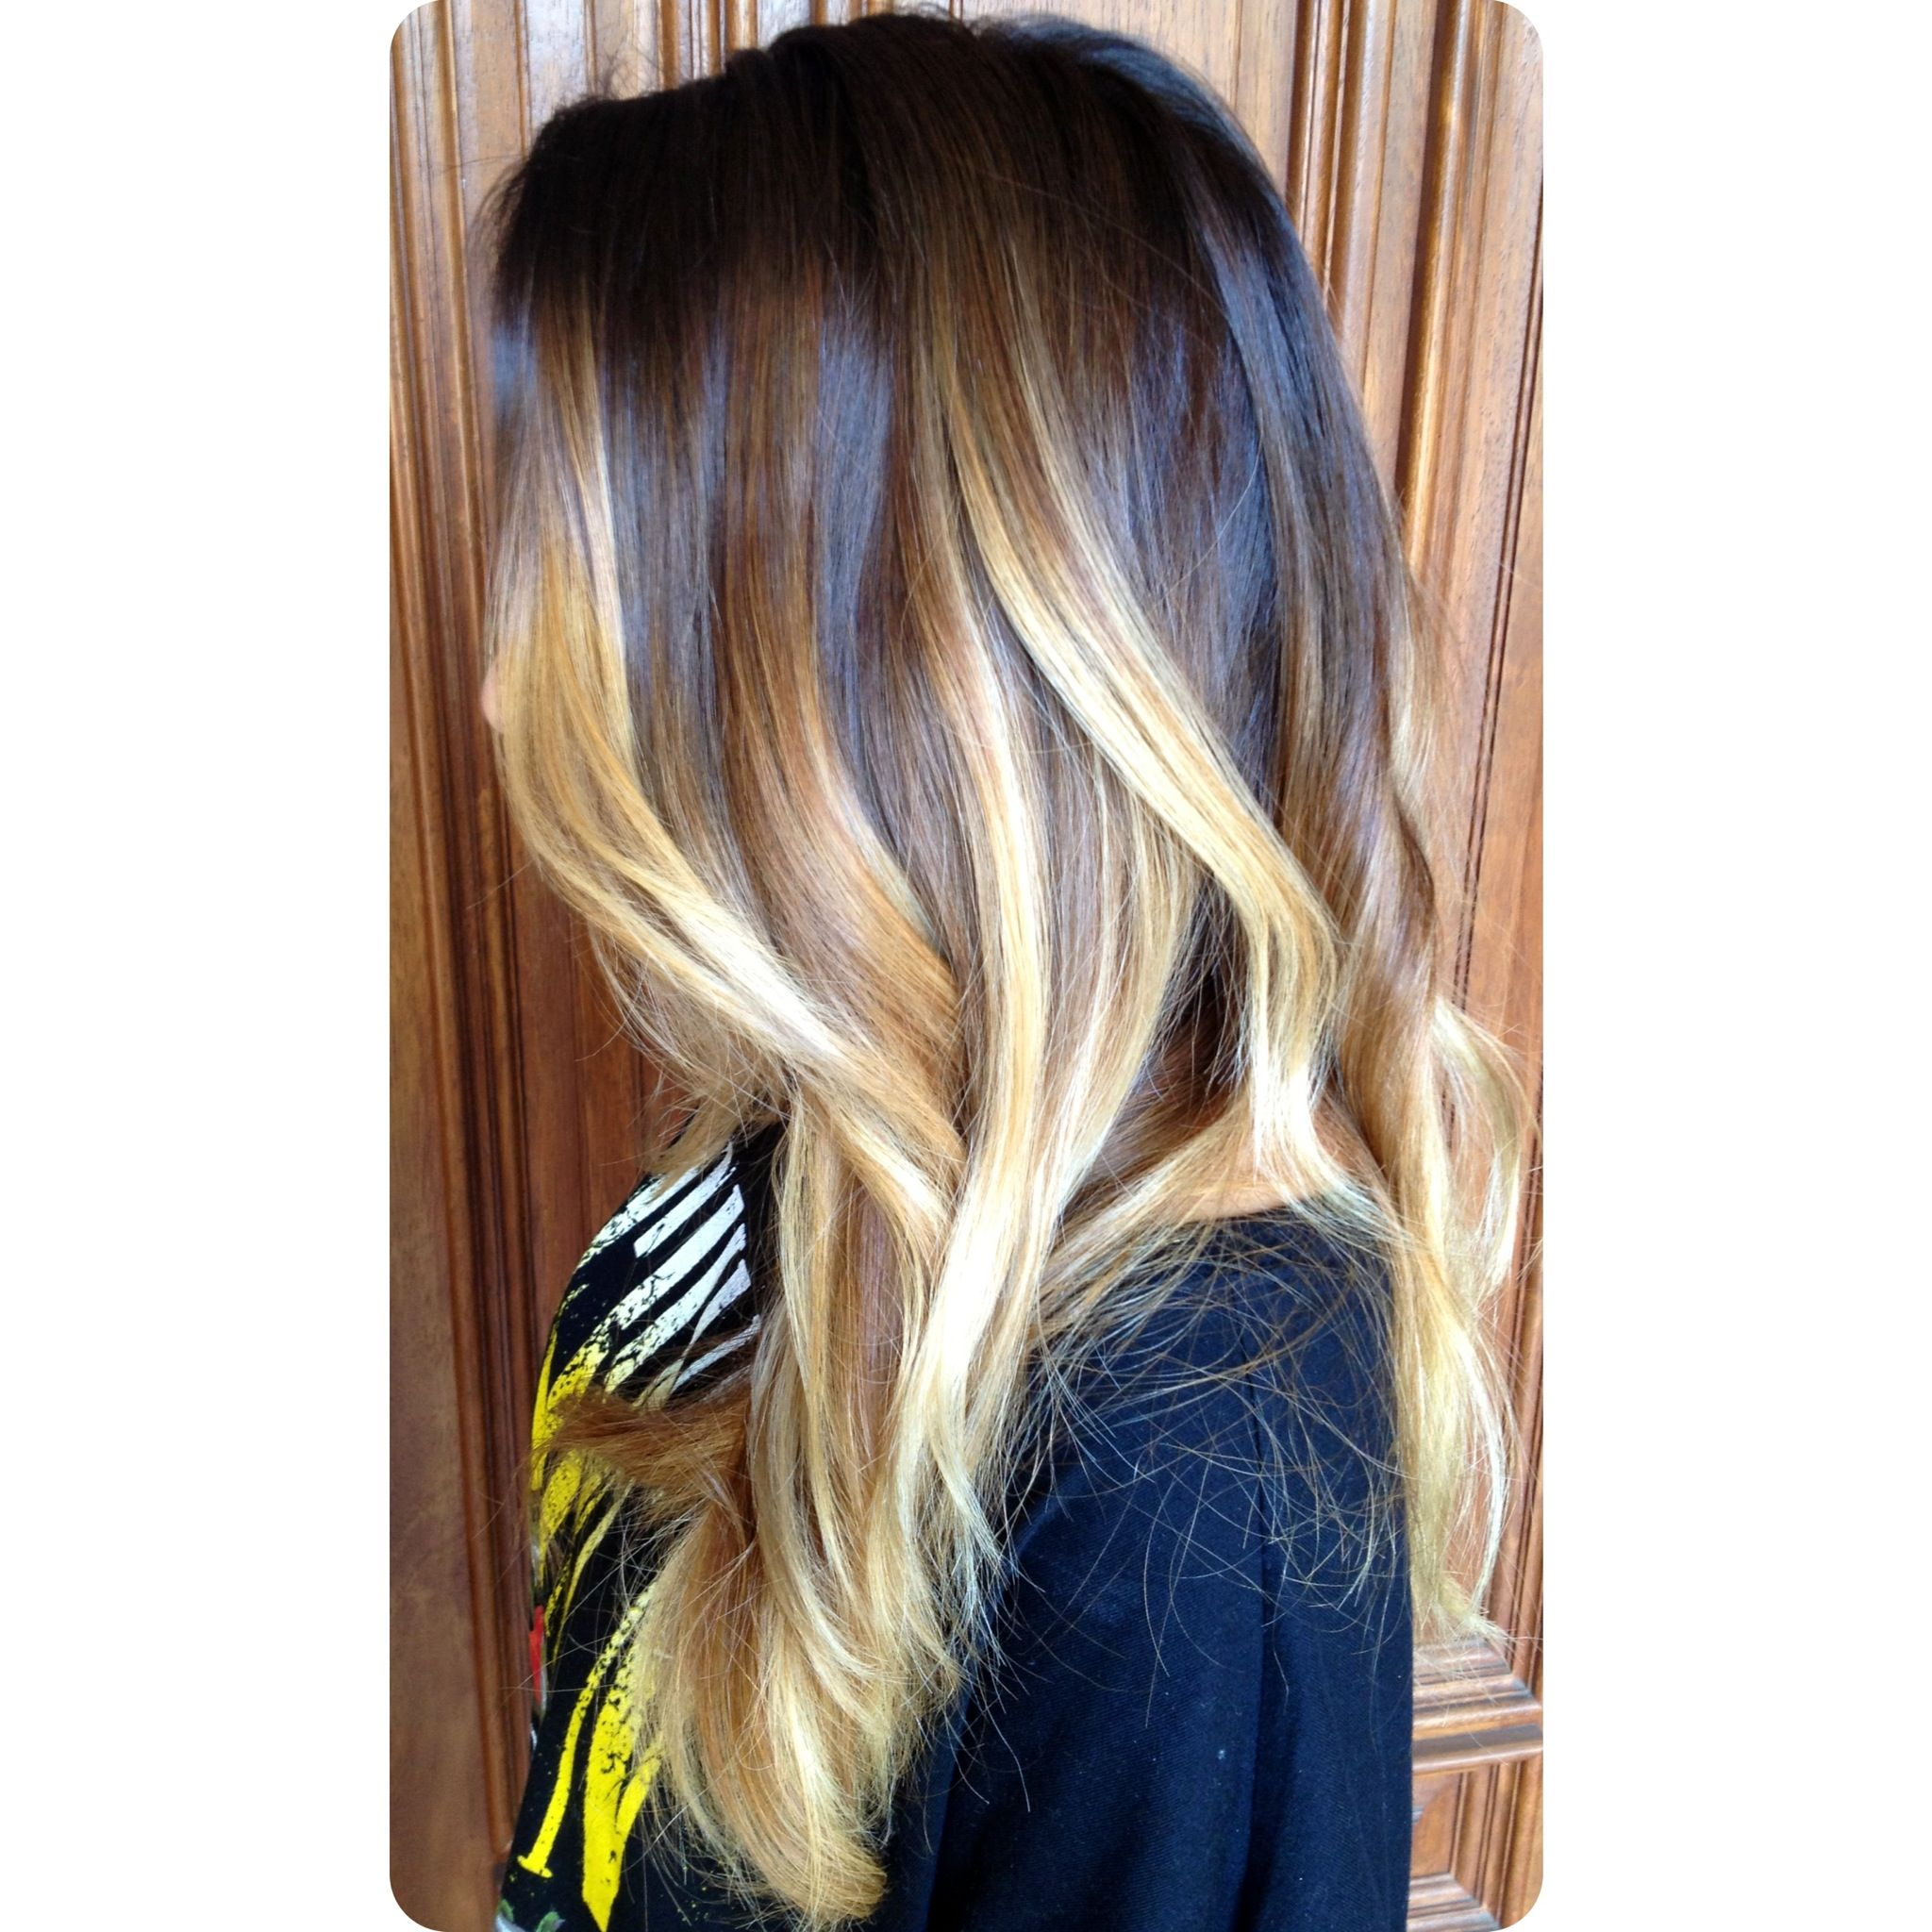 Dramatic Brunette To Blonde Balayage Ombre Color And Curly Layers Styledbykate Instagram